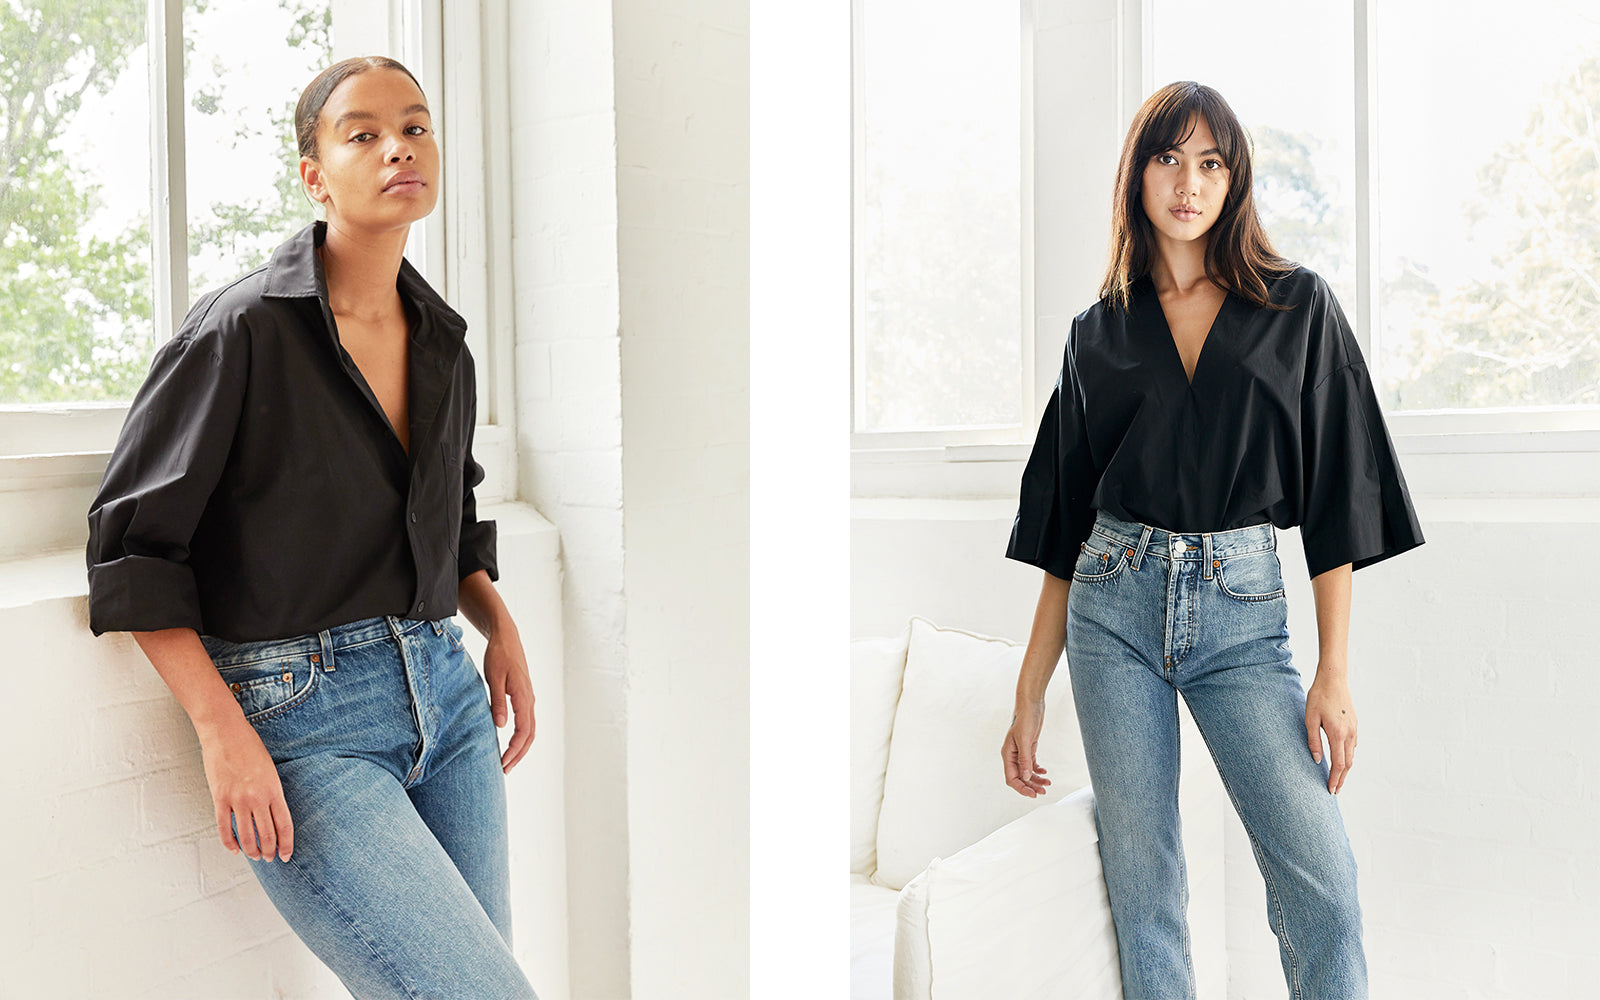 Outfit repeating - black top and blue jeans